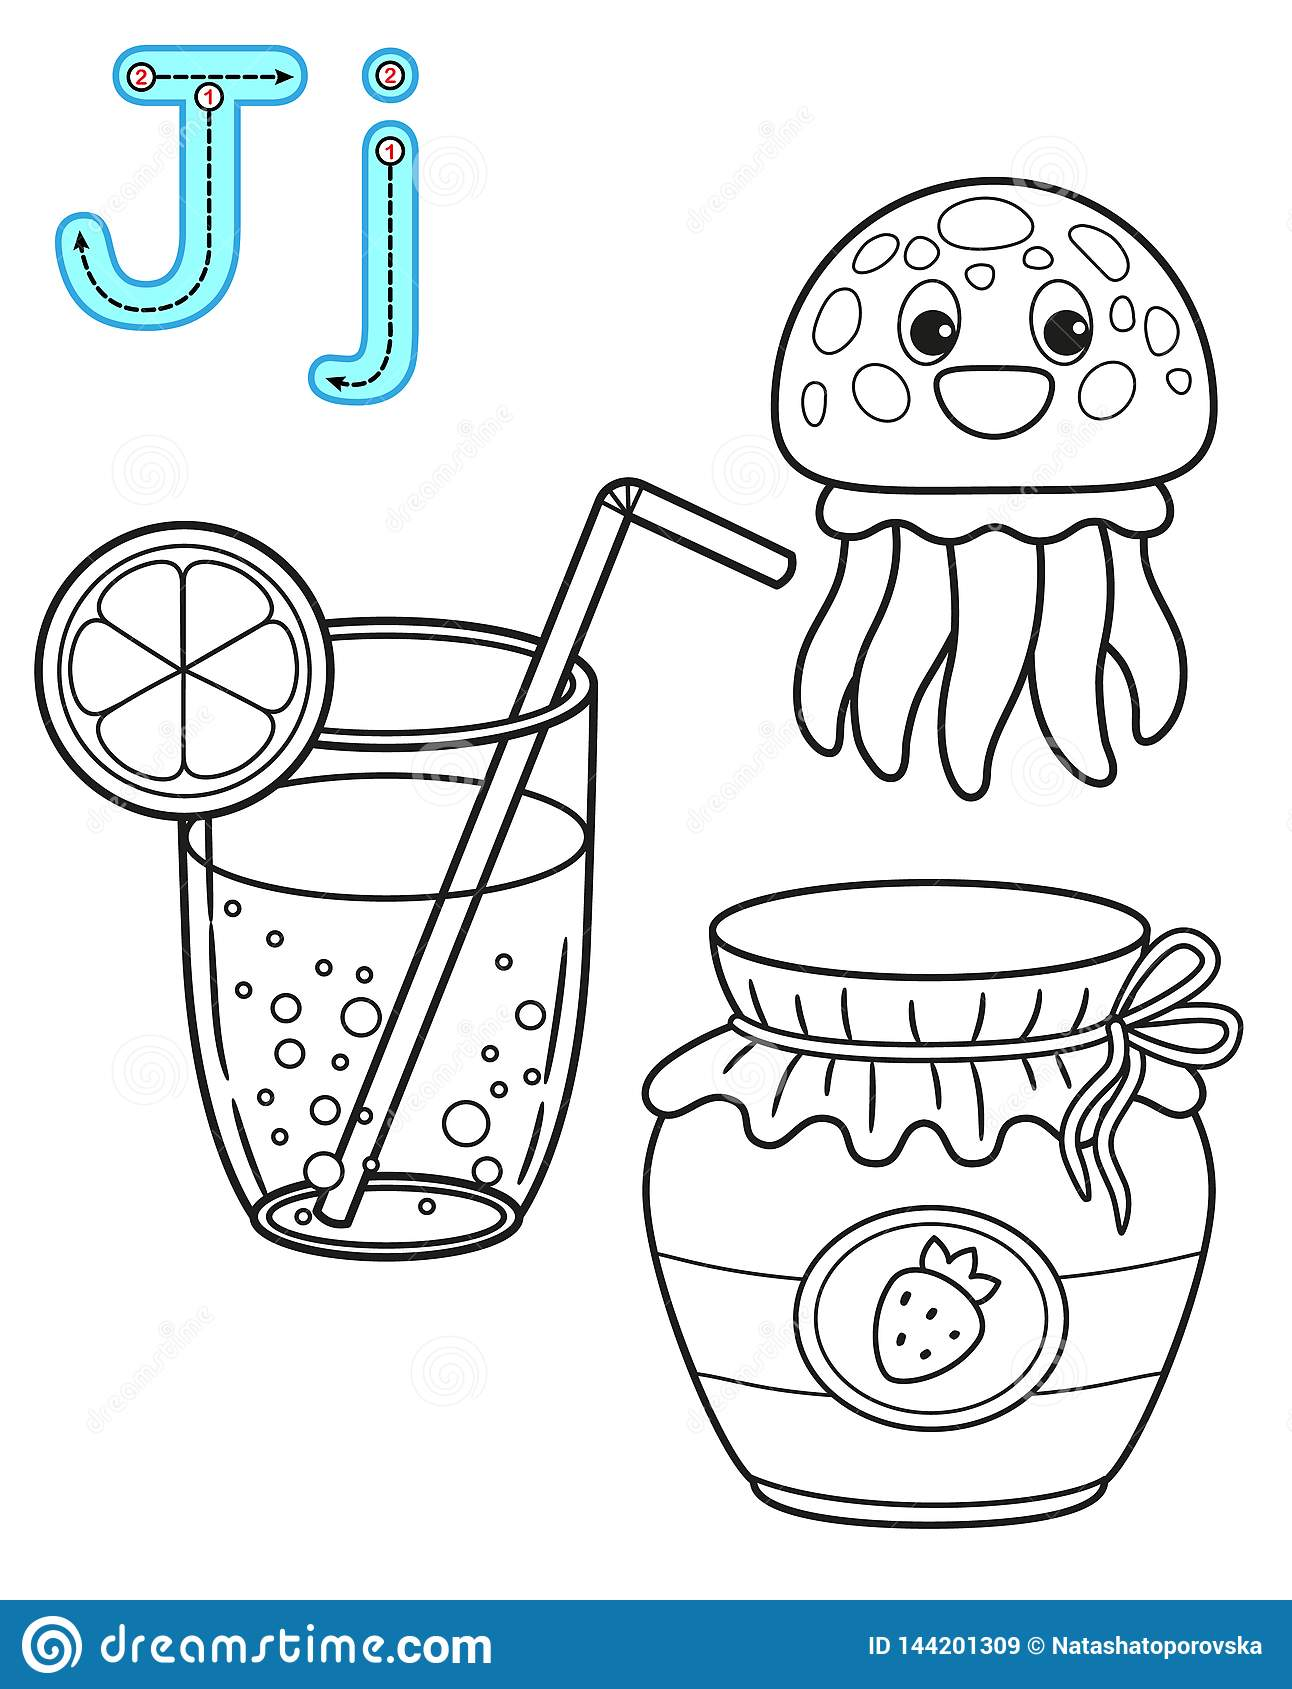 printable coloring page kindergarten preschool card study english vector coloring book alphabet letter j juice